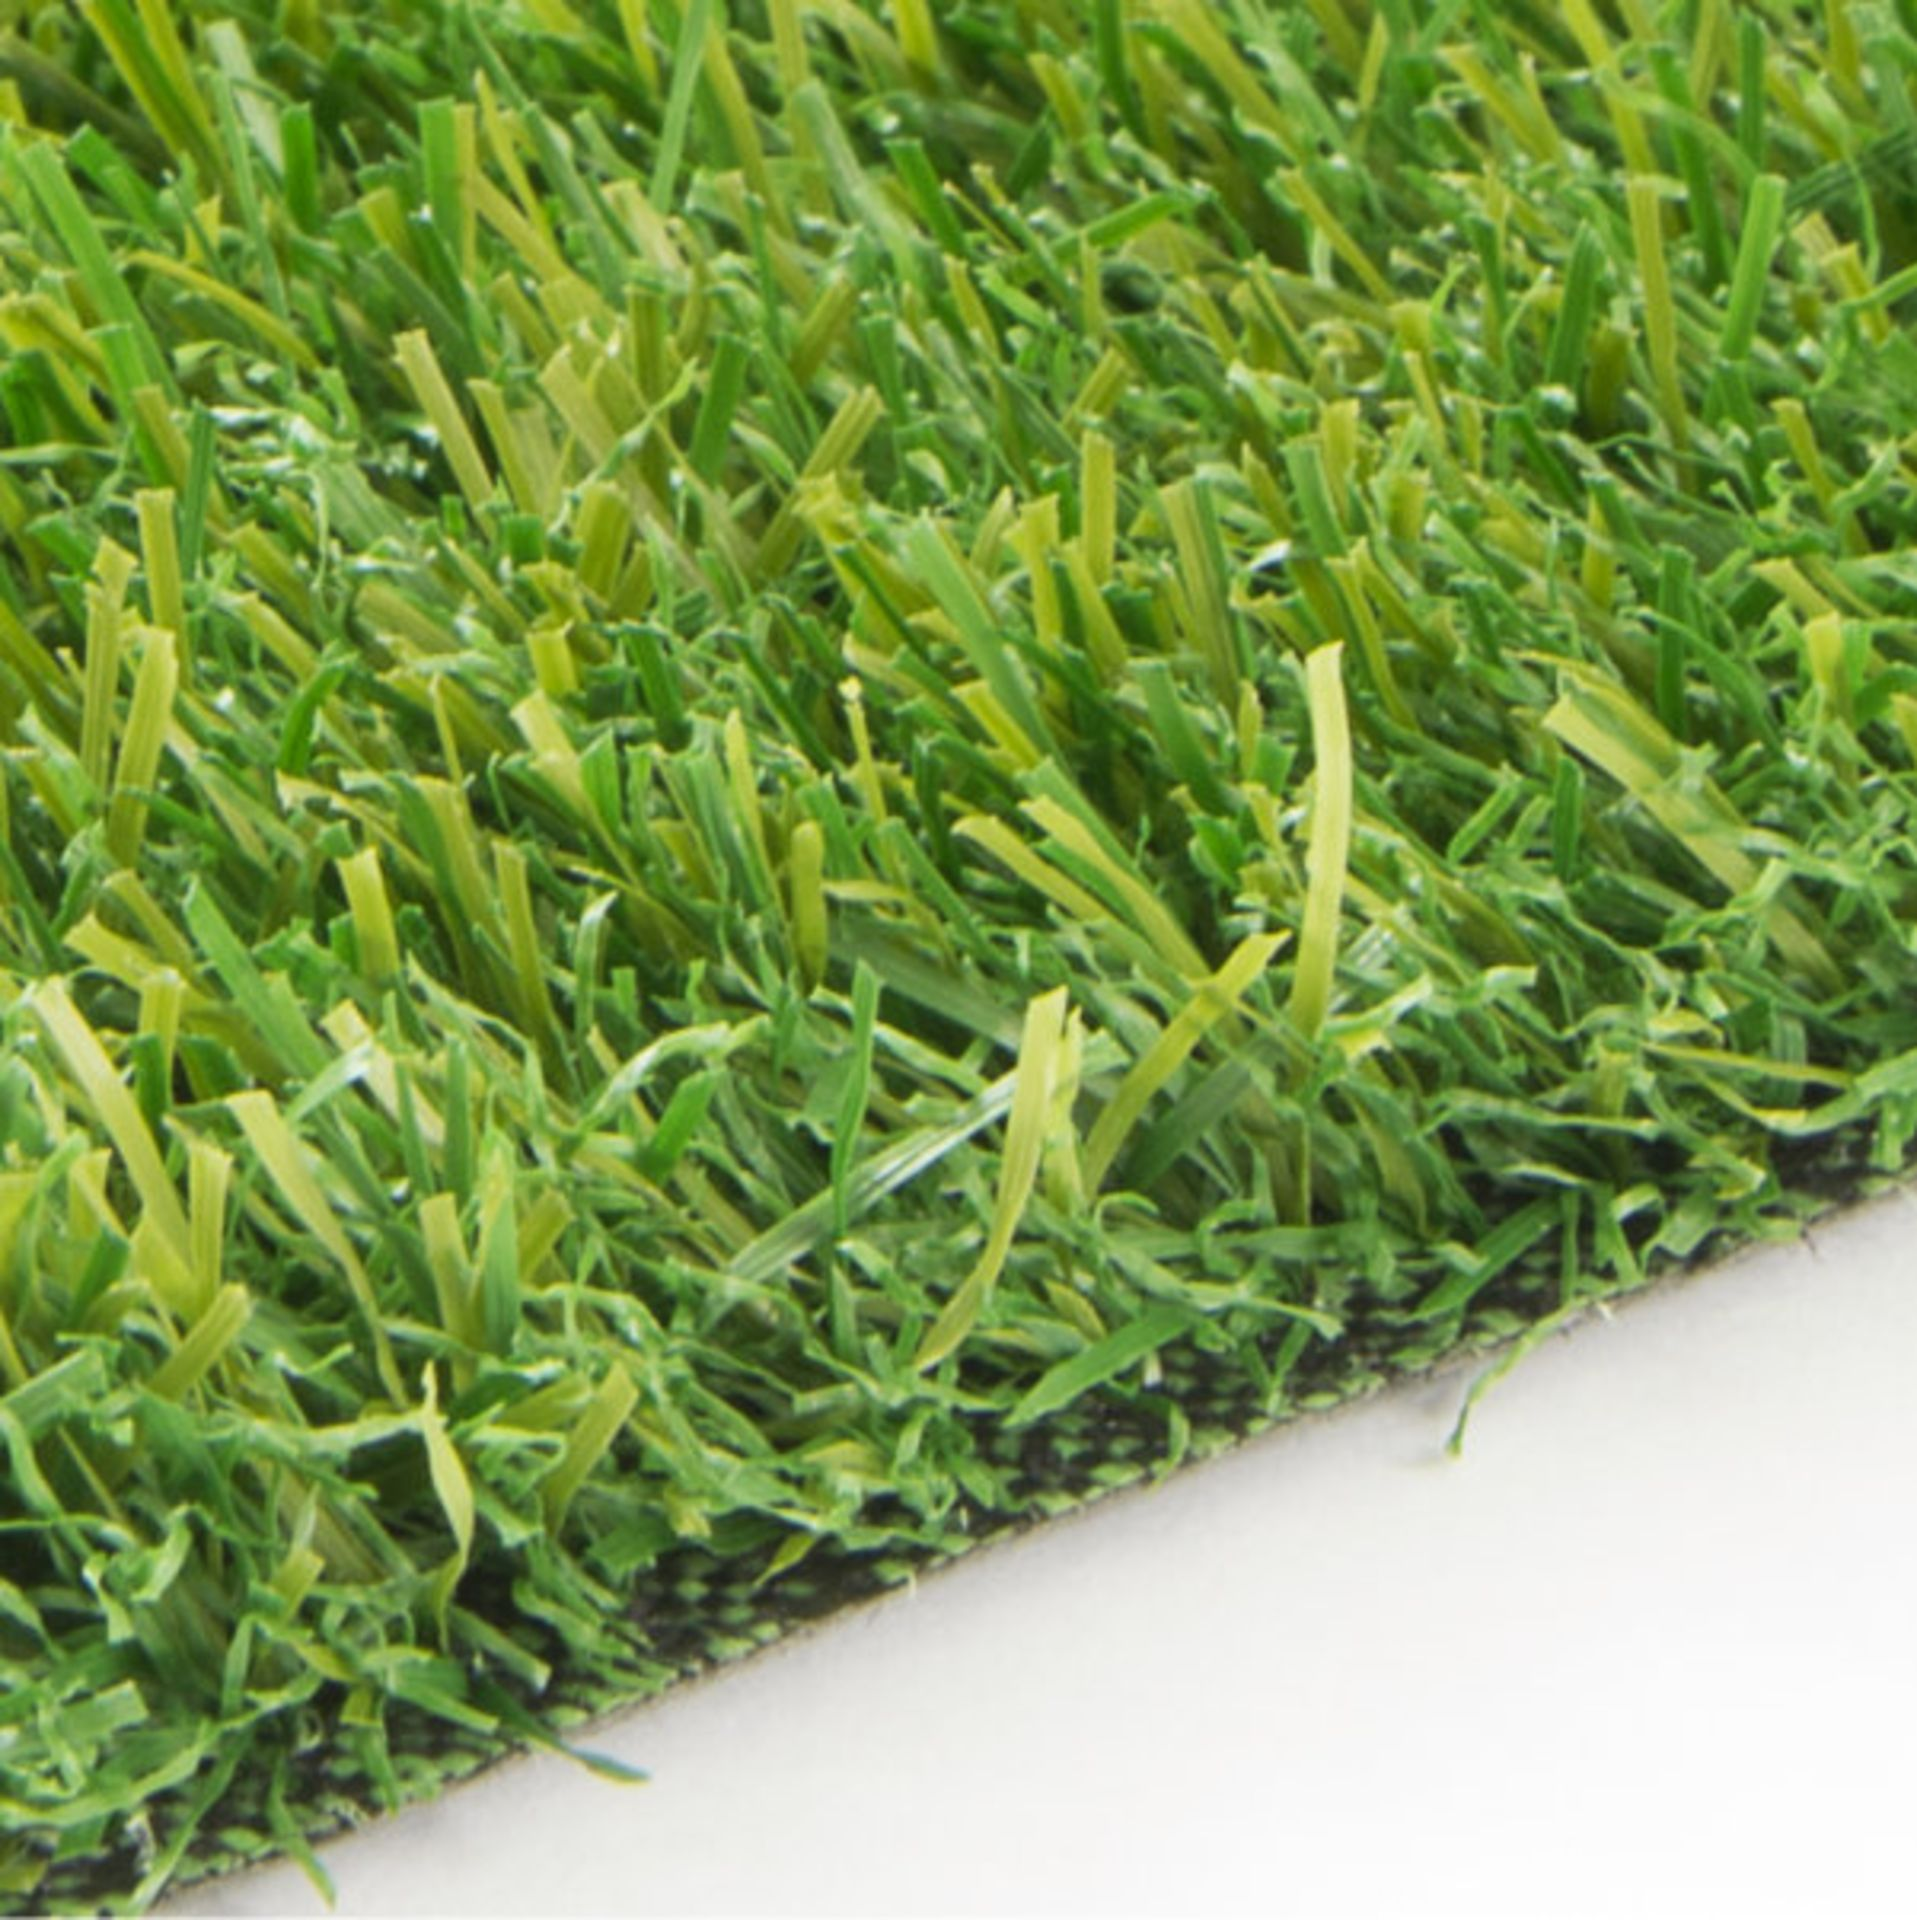 Lot 11 - A Full Roll of Perfect 20 Artificial Grass, 25 meters x 4 meters